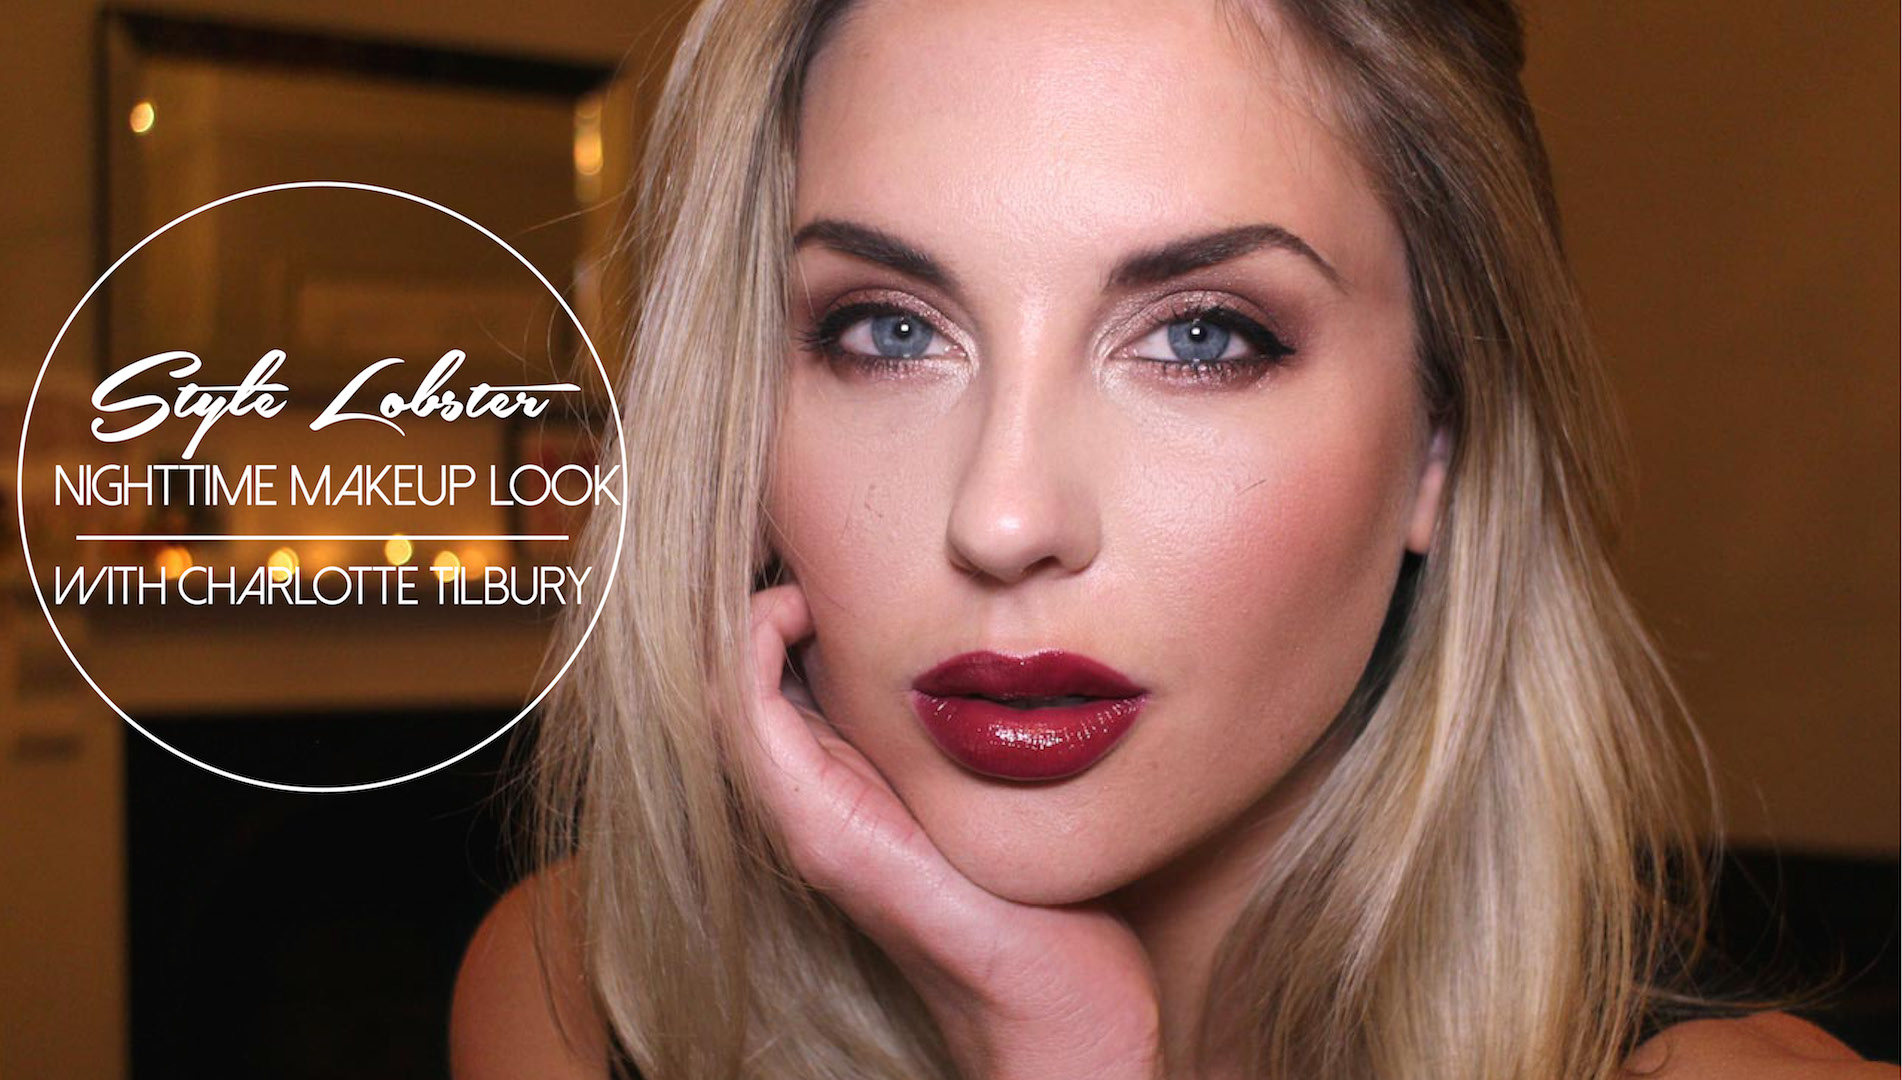 How To Nighttime Makeup Look With Charlotte Tilbury